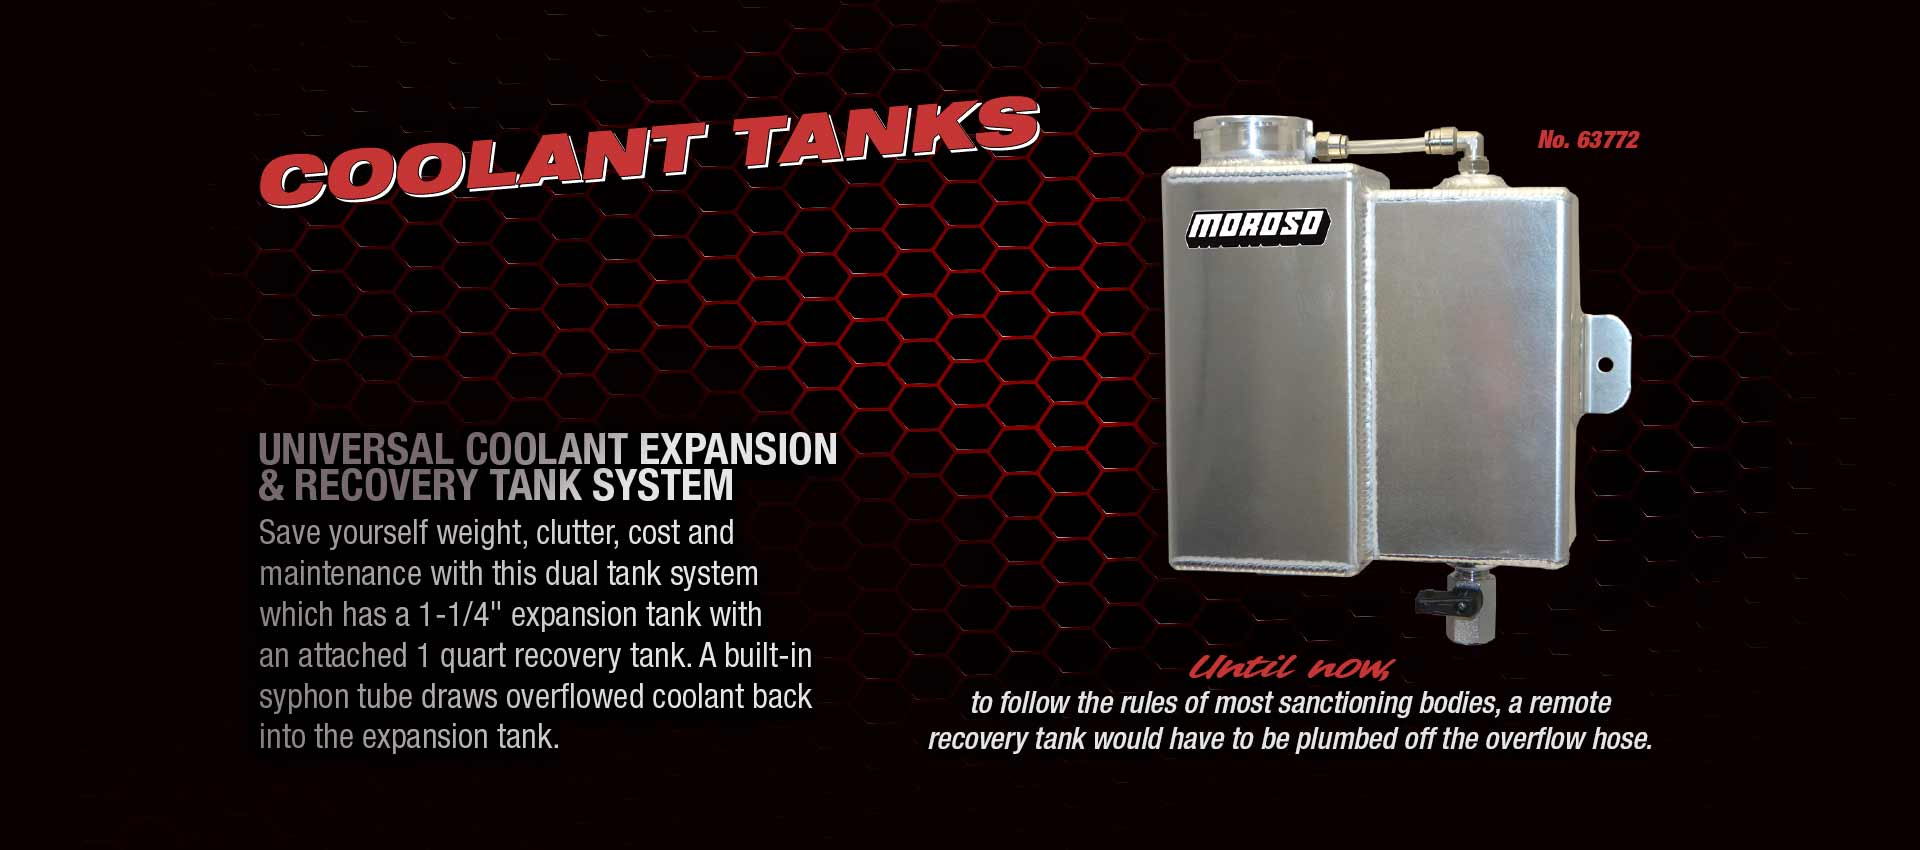 Coolant Tanks